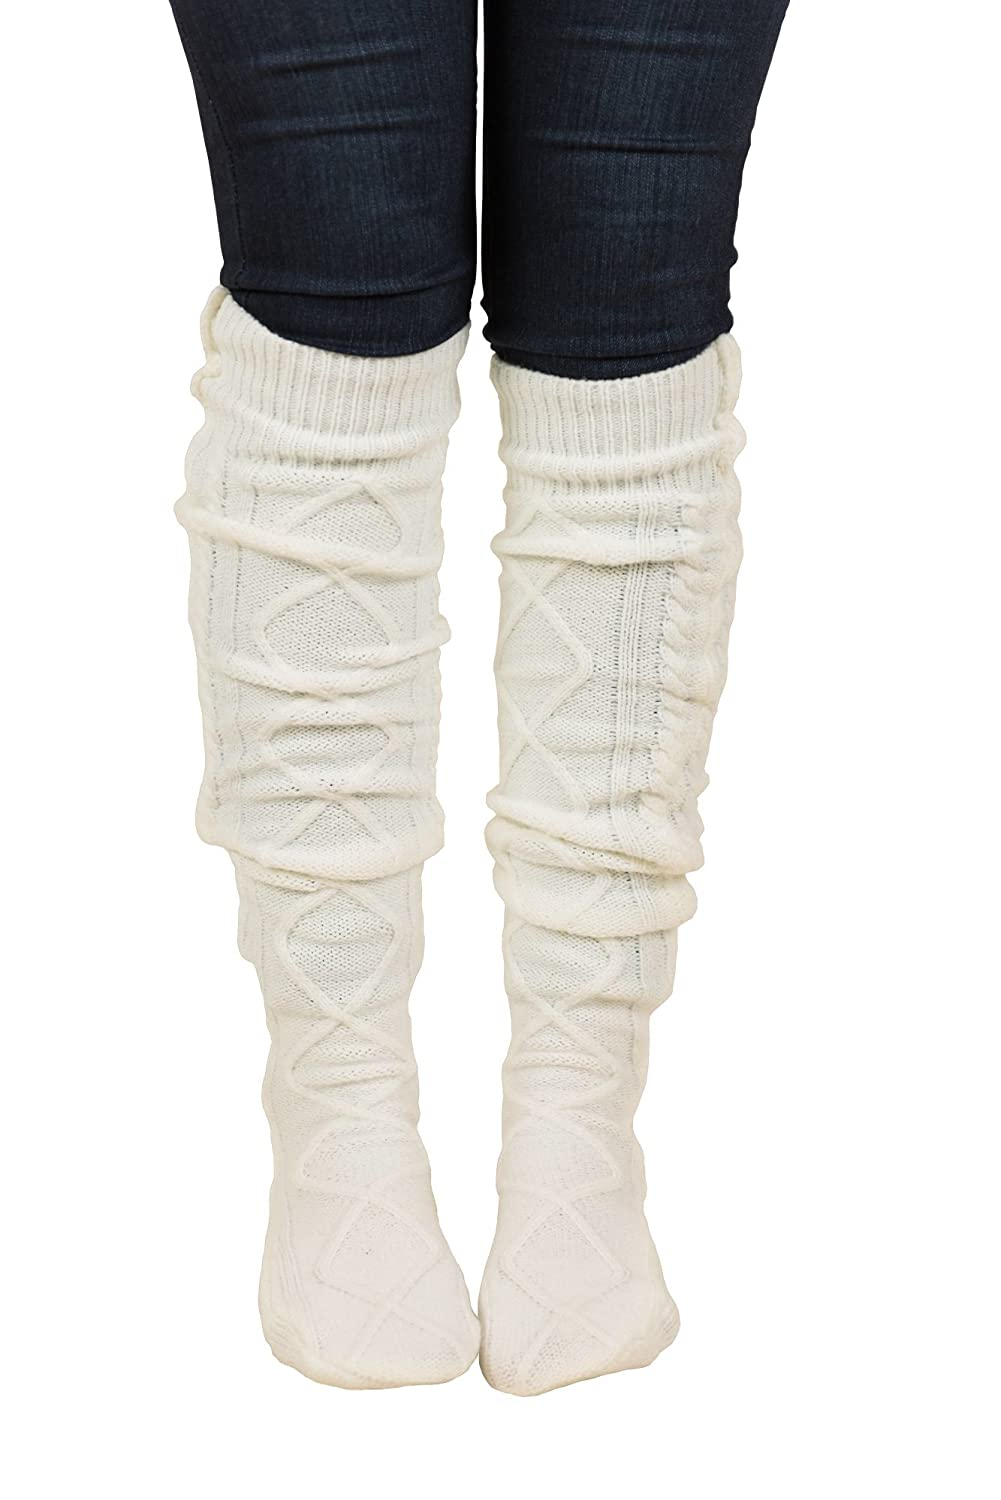 cee630e8ddfe0 Floral Find Women's Cable Knit Knee-High Winter Boot Socks Extra Long Thigh Leg  Warmers Stocking at Amazon Women's Clothing store: